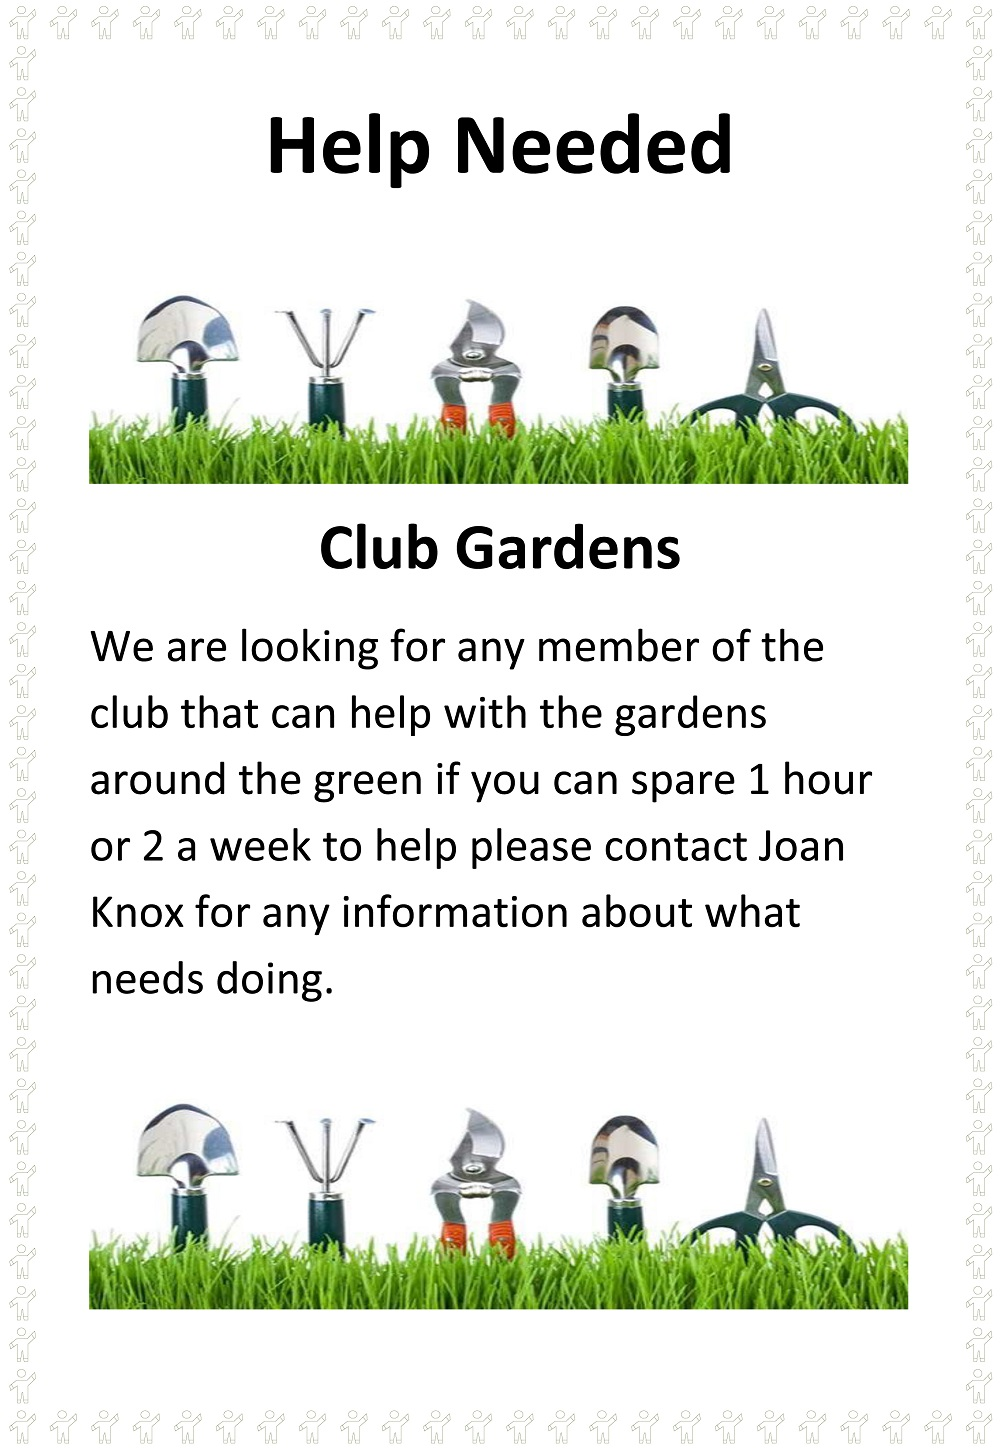 Help Needed with Gardens 24 2 2021